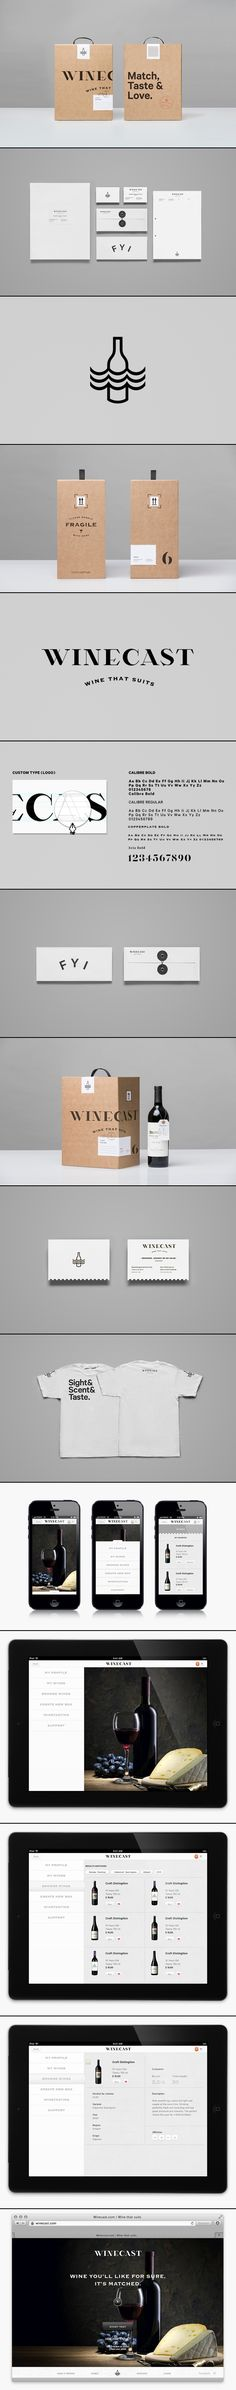 Winecast #wine #identity #packaging #branding PD